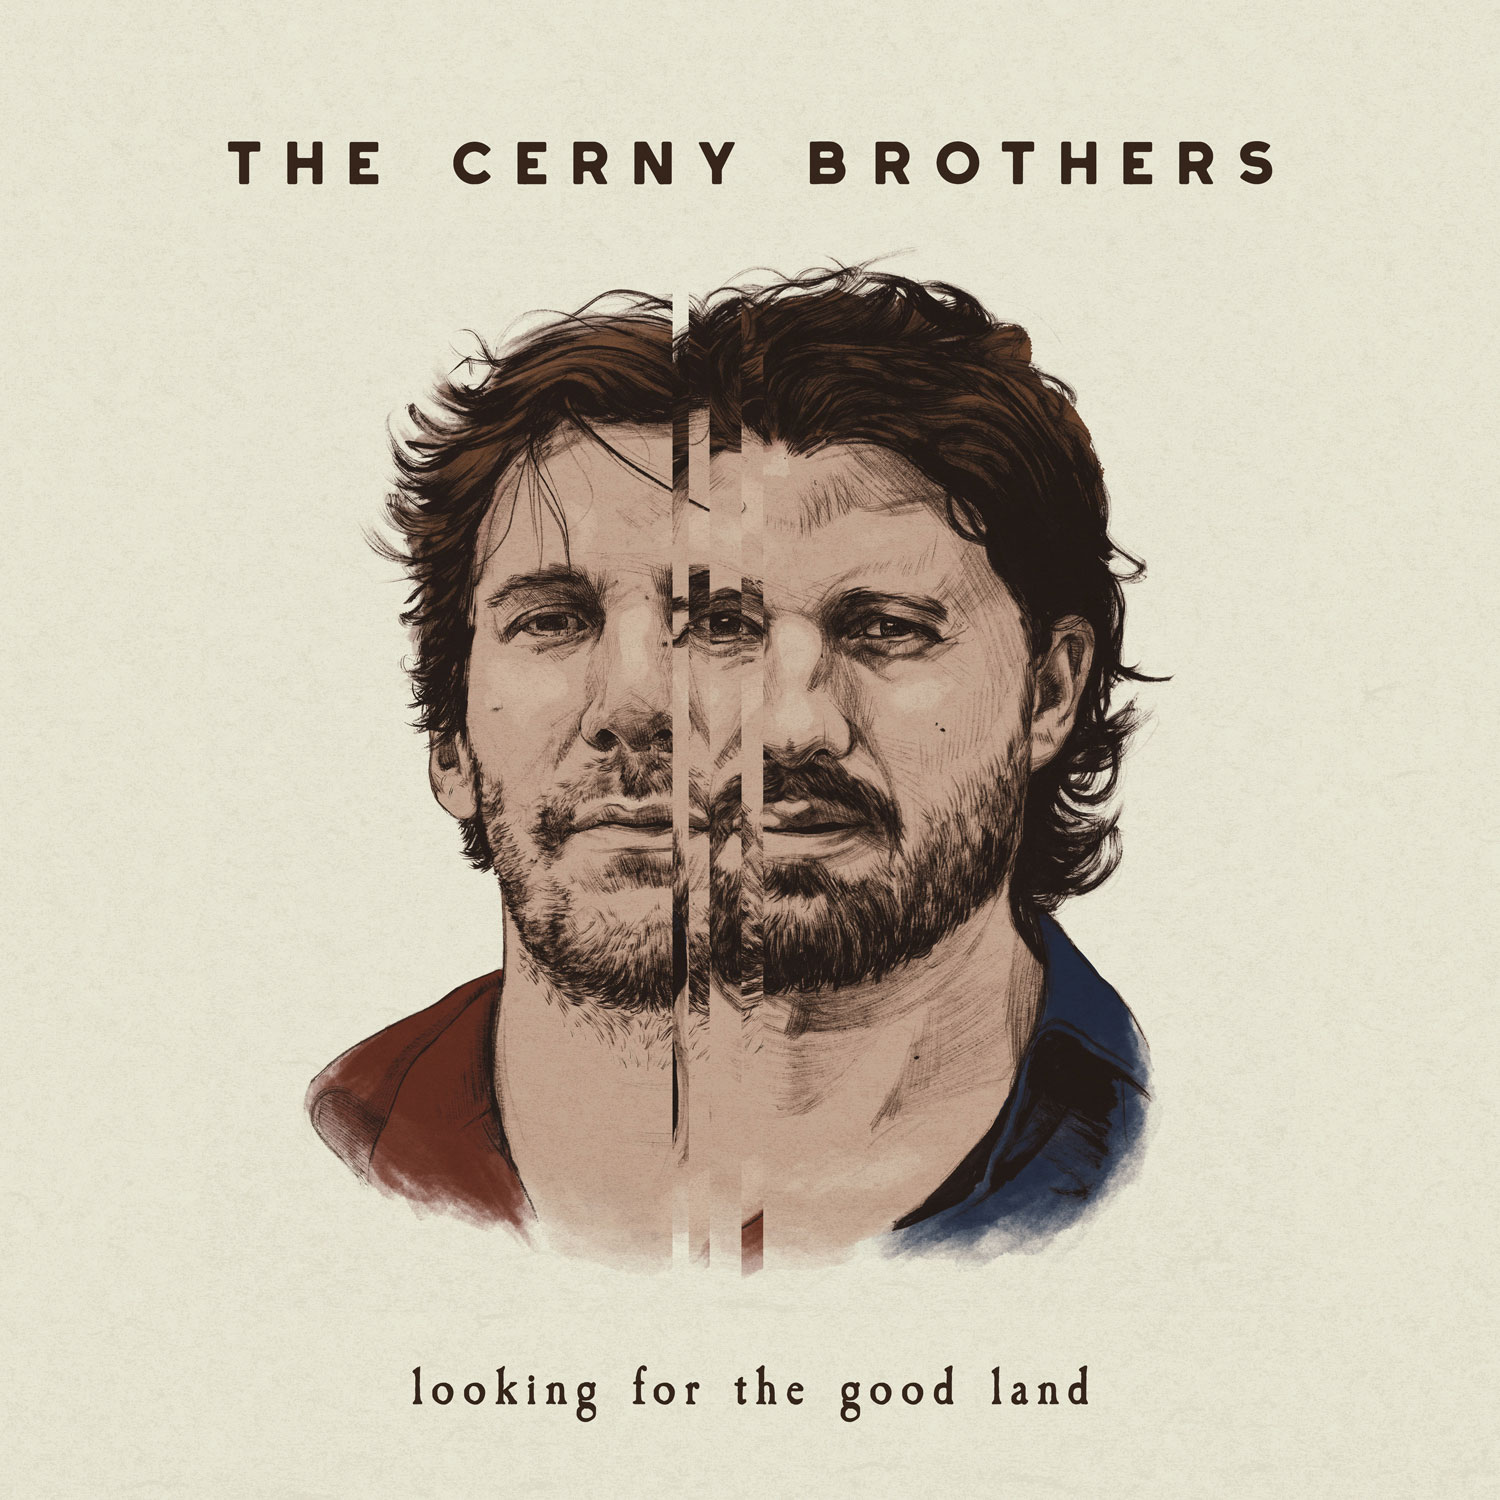 The Cerny Brothers